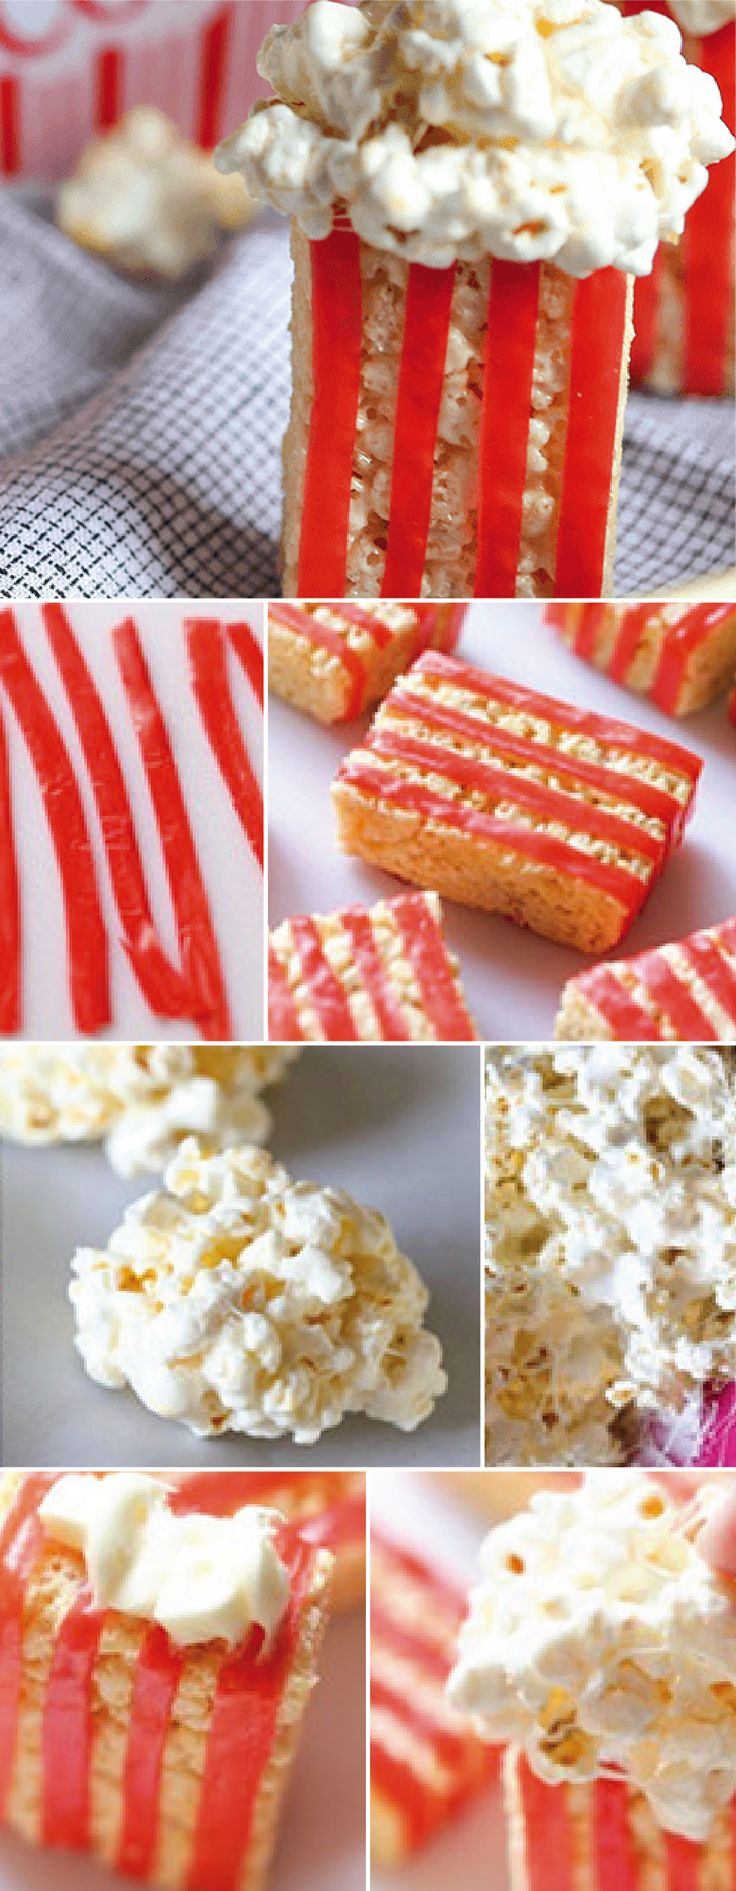 These adorable popcorn Rice Krispies Treats® are perfect for movie nights with your family. Whether you choose to make them for a theatre-themed birthday party or after-school snack, there are so many reasons to love this fun recipe.